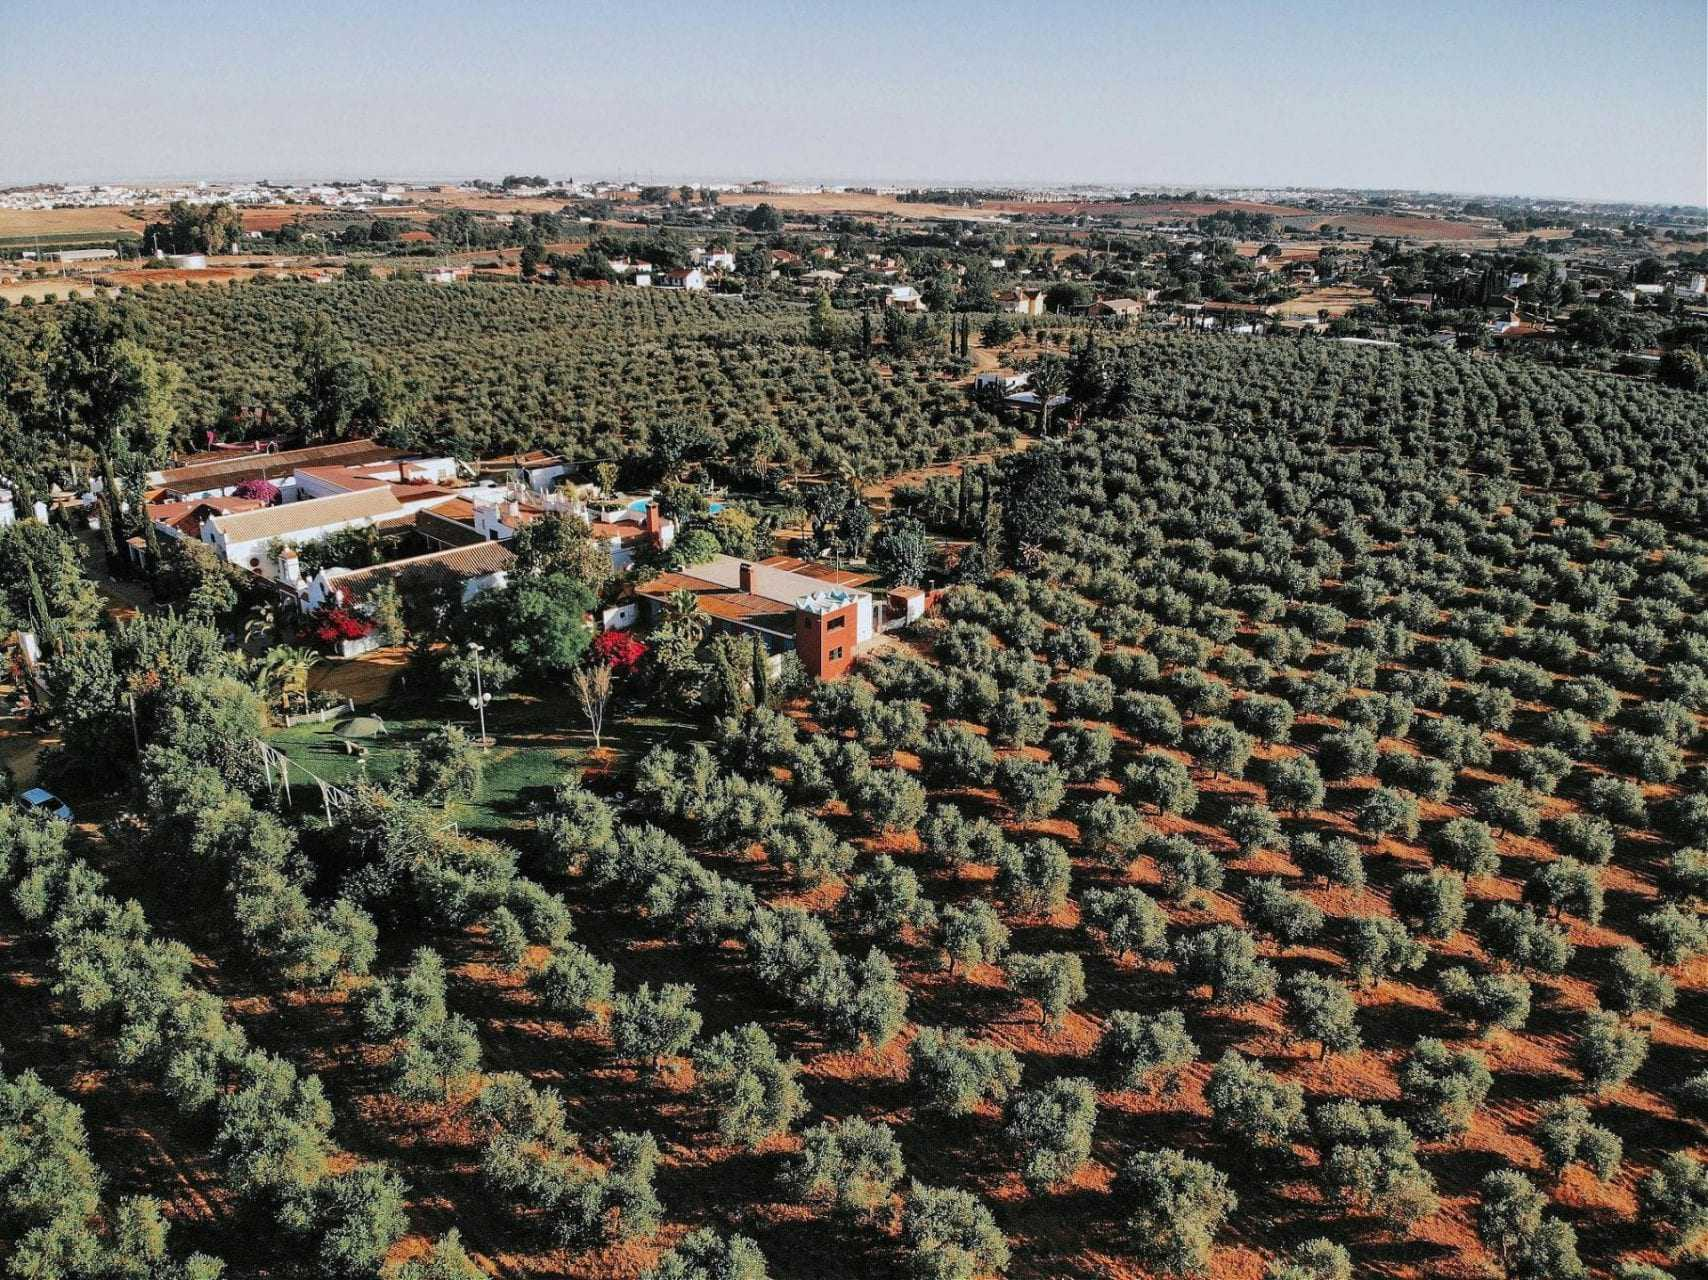 climate-and-covid-worry-farmers-preparing-for-harvest-olive-oil-times